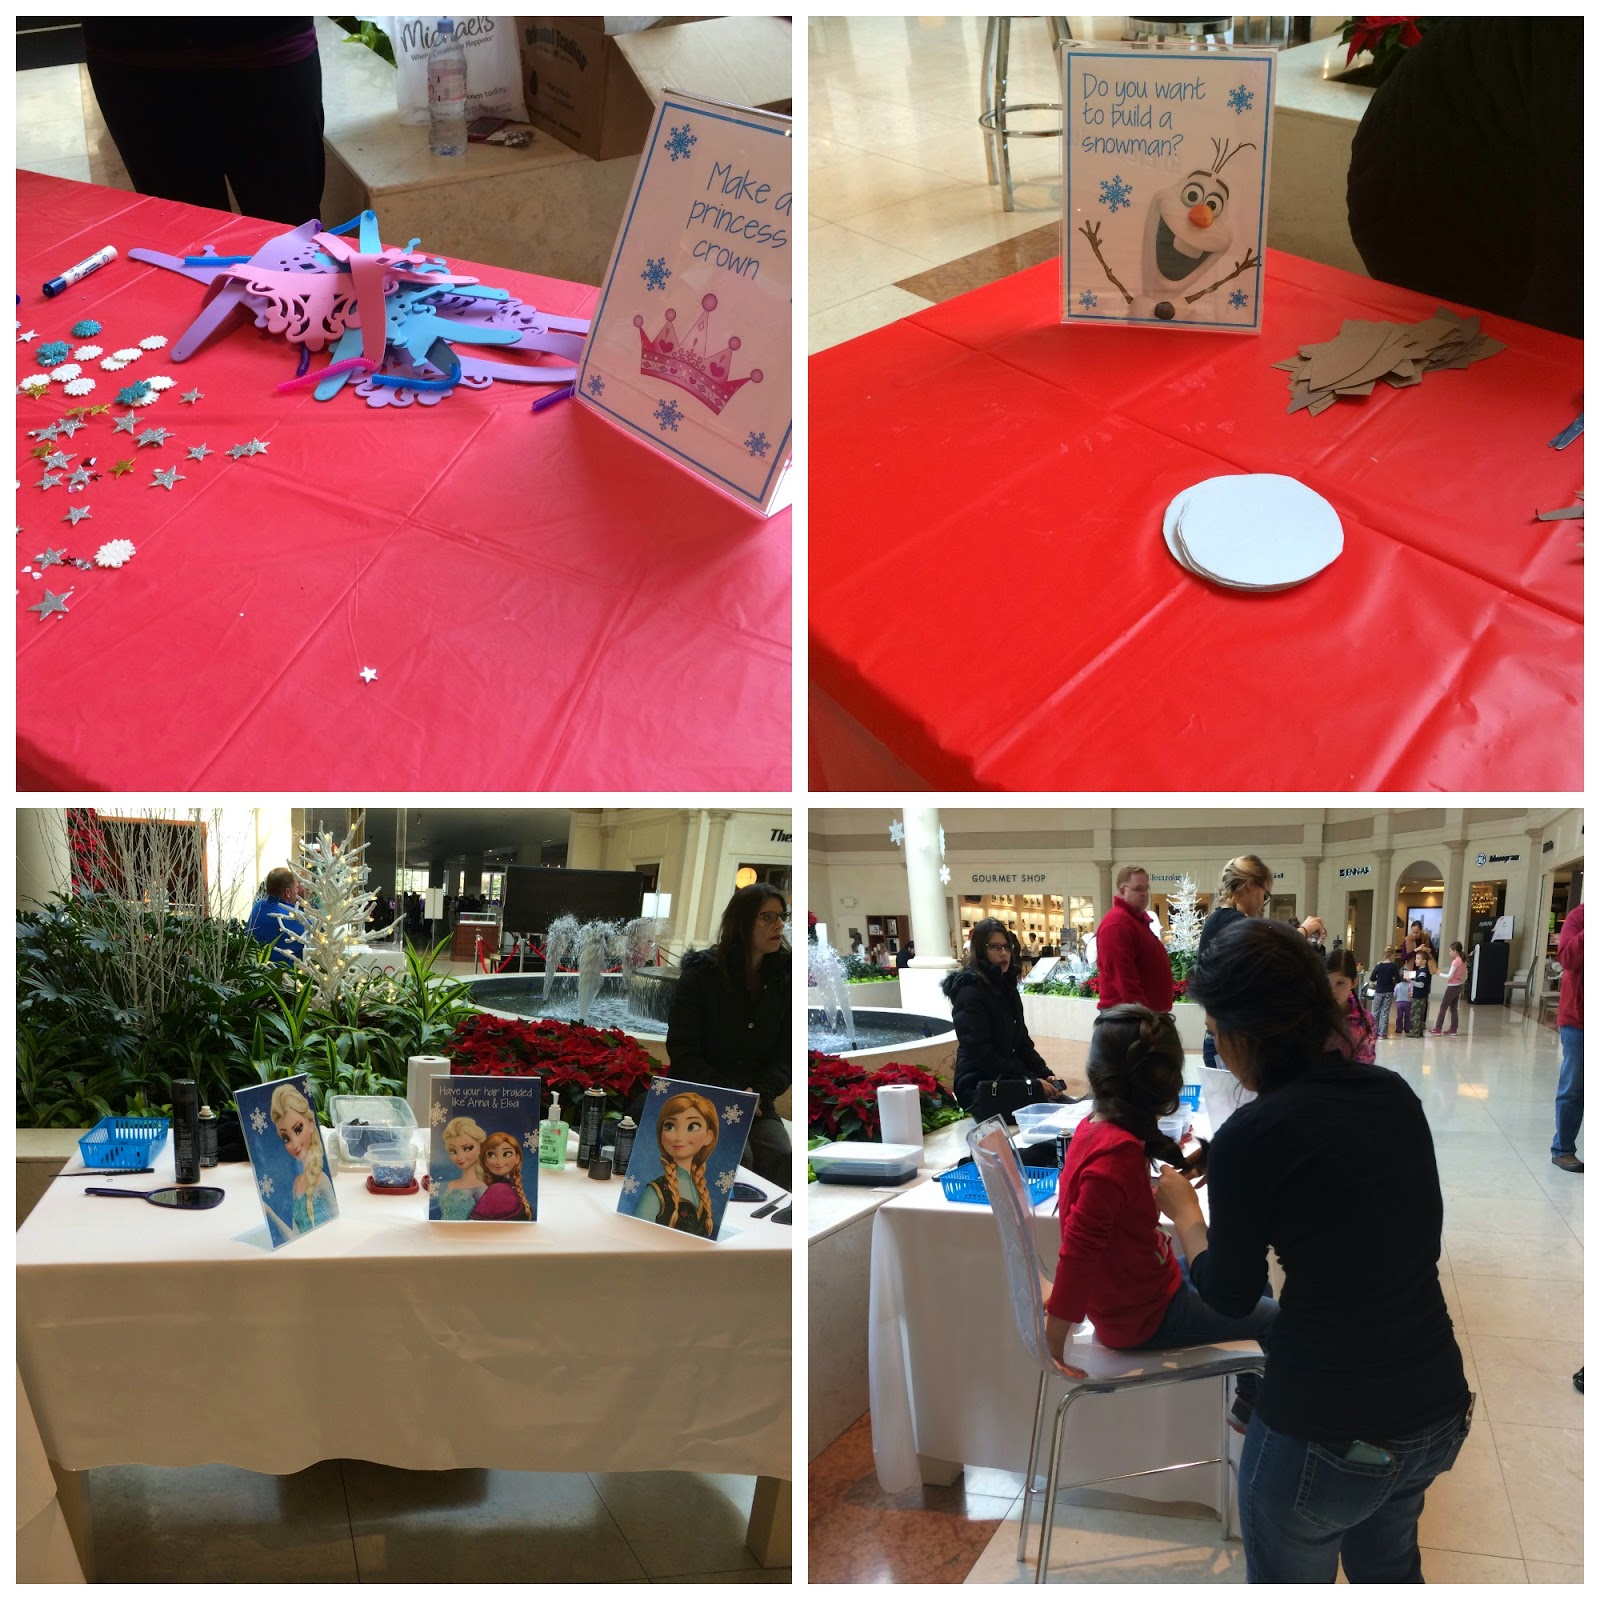 Frozen-themed fun at Abt in Glenview